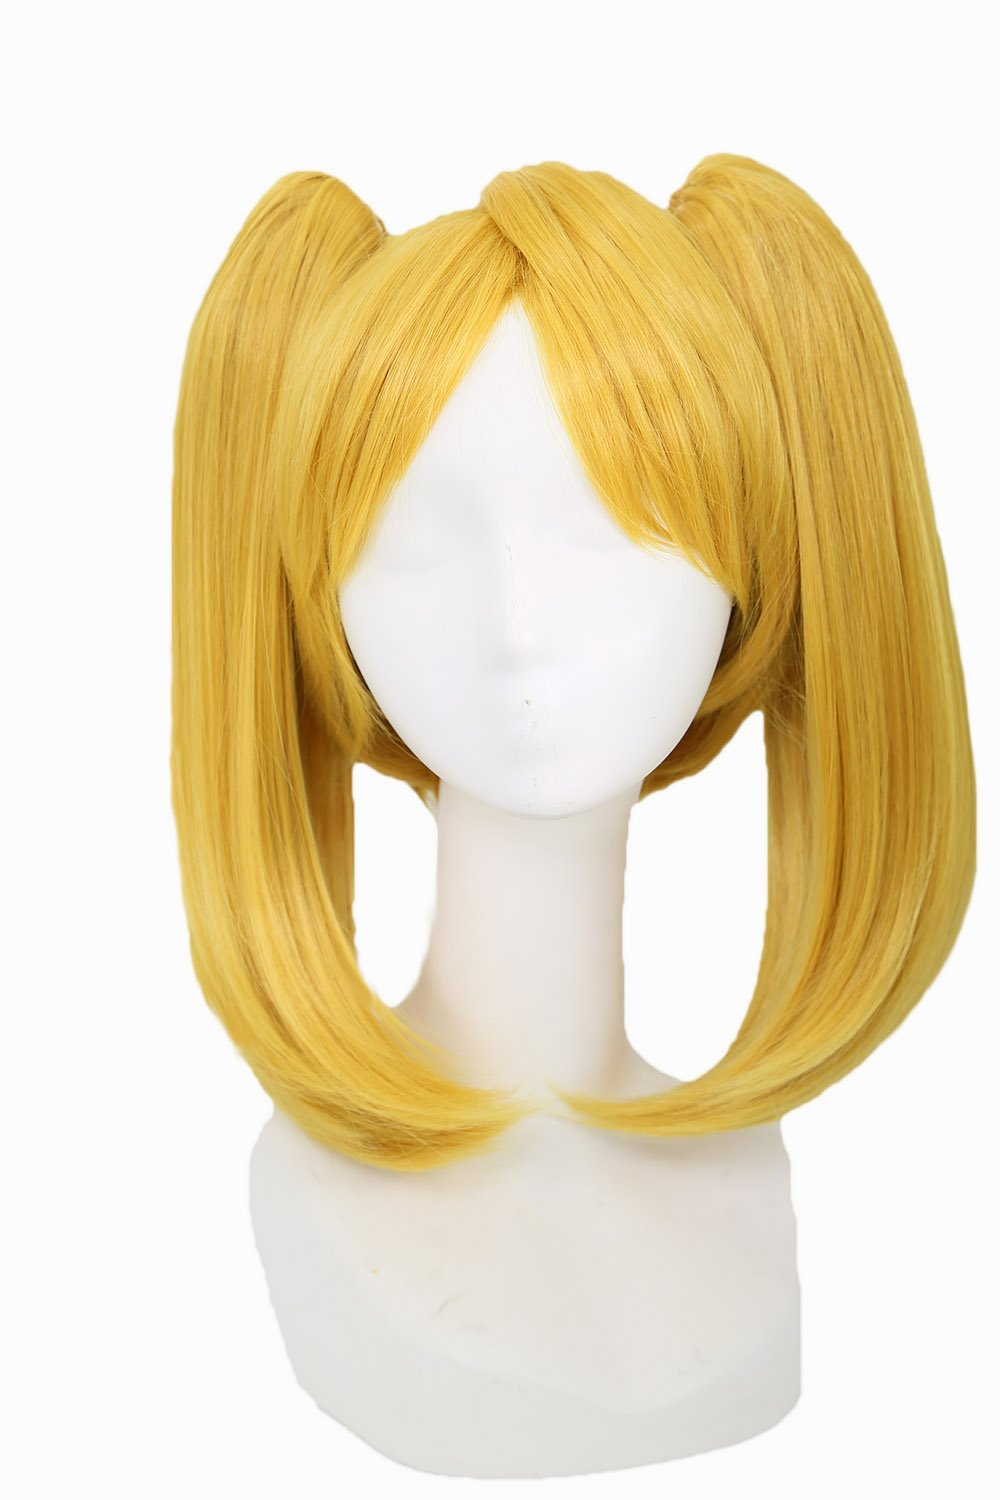 Powerpuff Girls Cosplay Buttercup Wig Black Short Straight Wig Hair Costume Accessories Xcoser